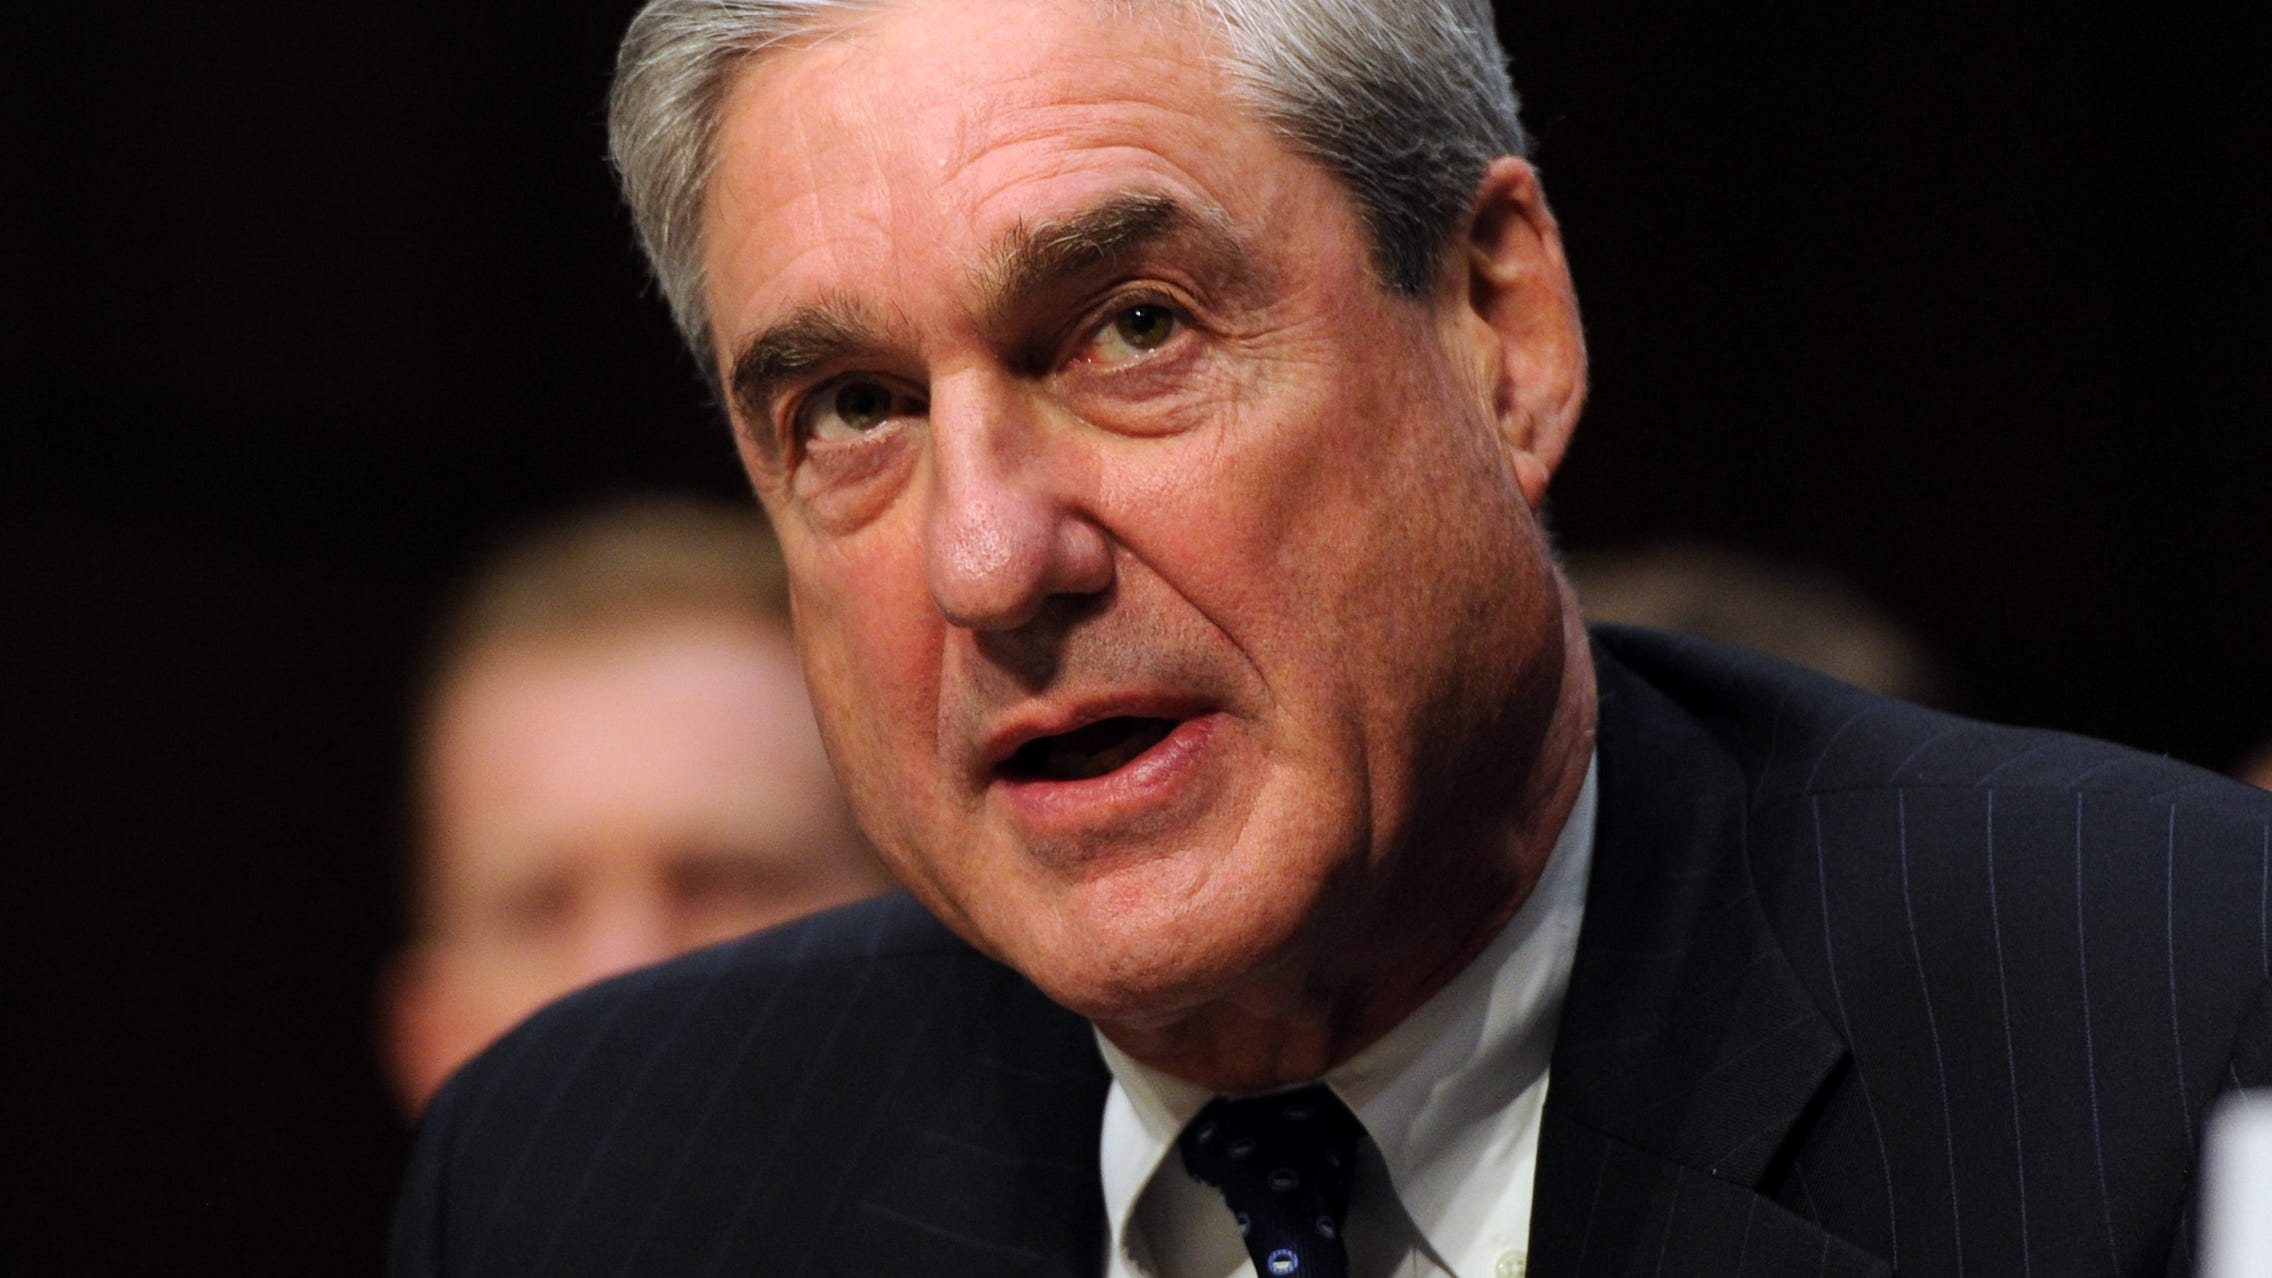 Former FBI Director Robert Mueller is pictured testifying at a Senate Intelligence Committee hearing on worldwide threats.